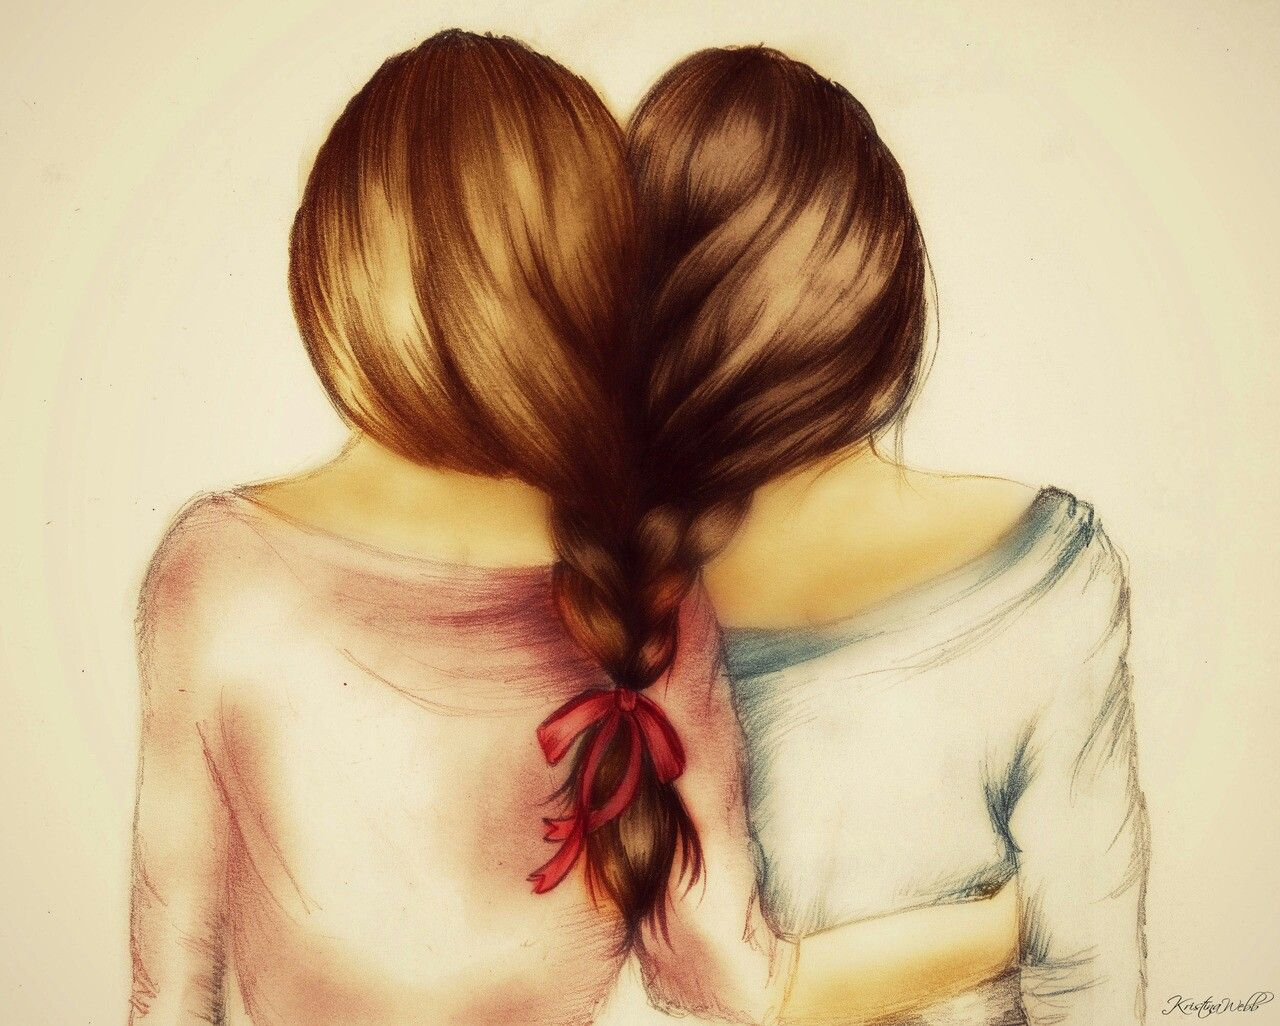 best friends on we heart it amazayn drawings pinterest